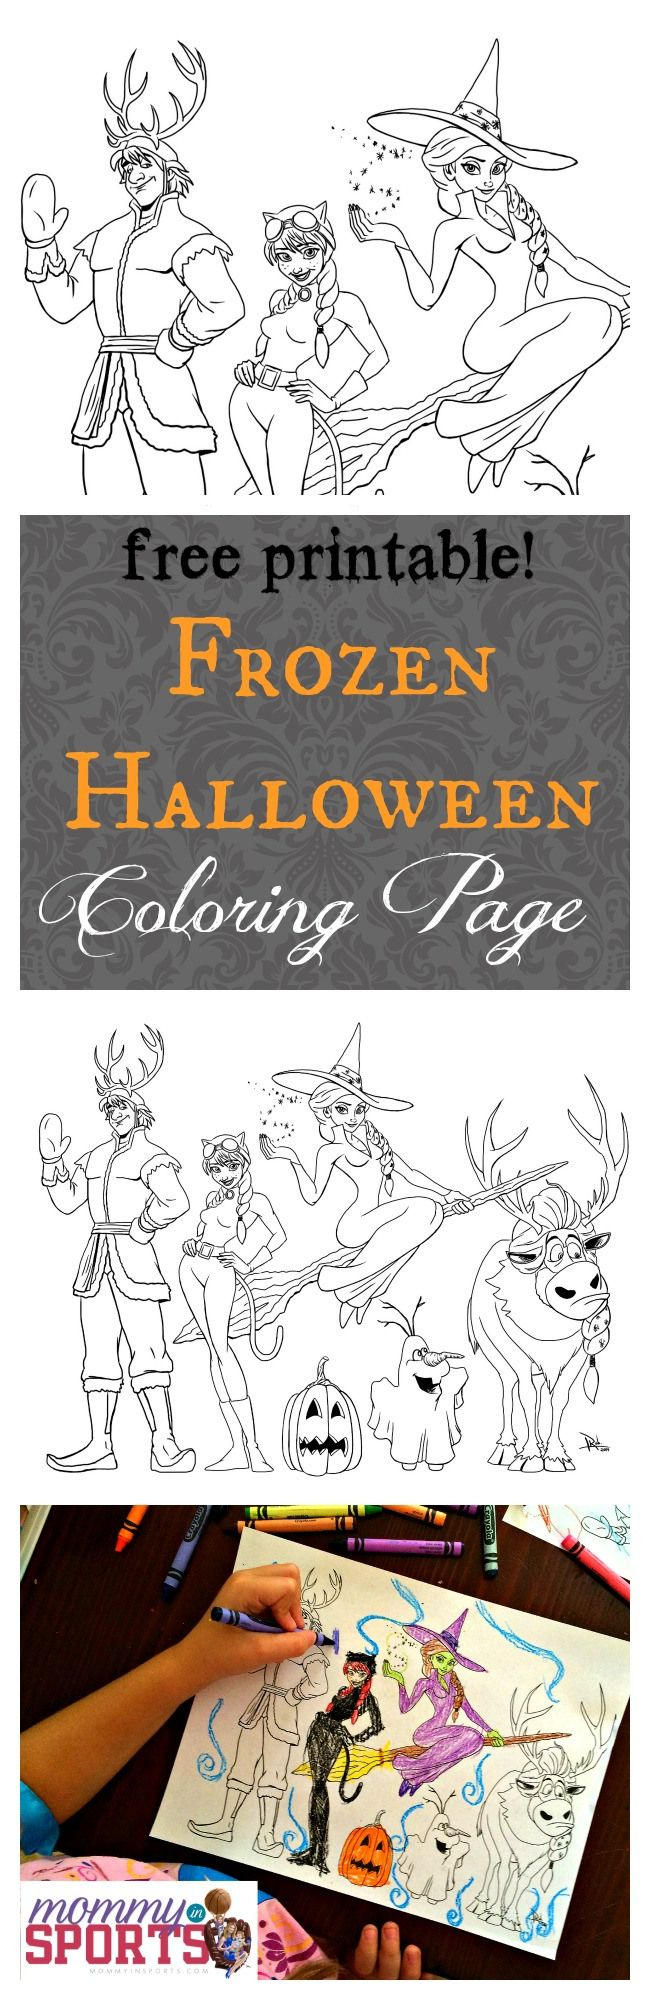 Halloween is almost here and my kids will love this Frozen Free coloring page!